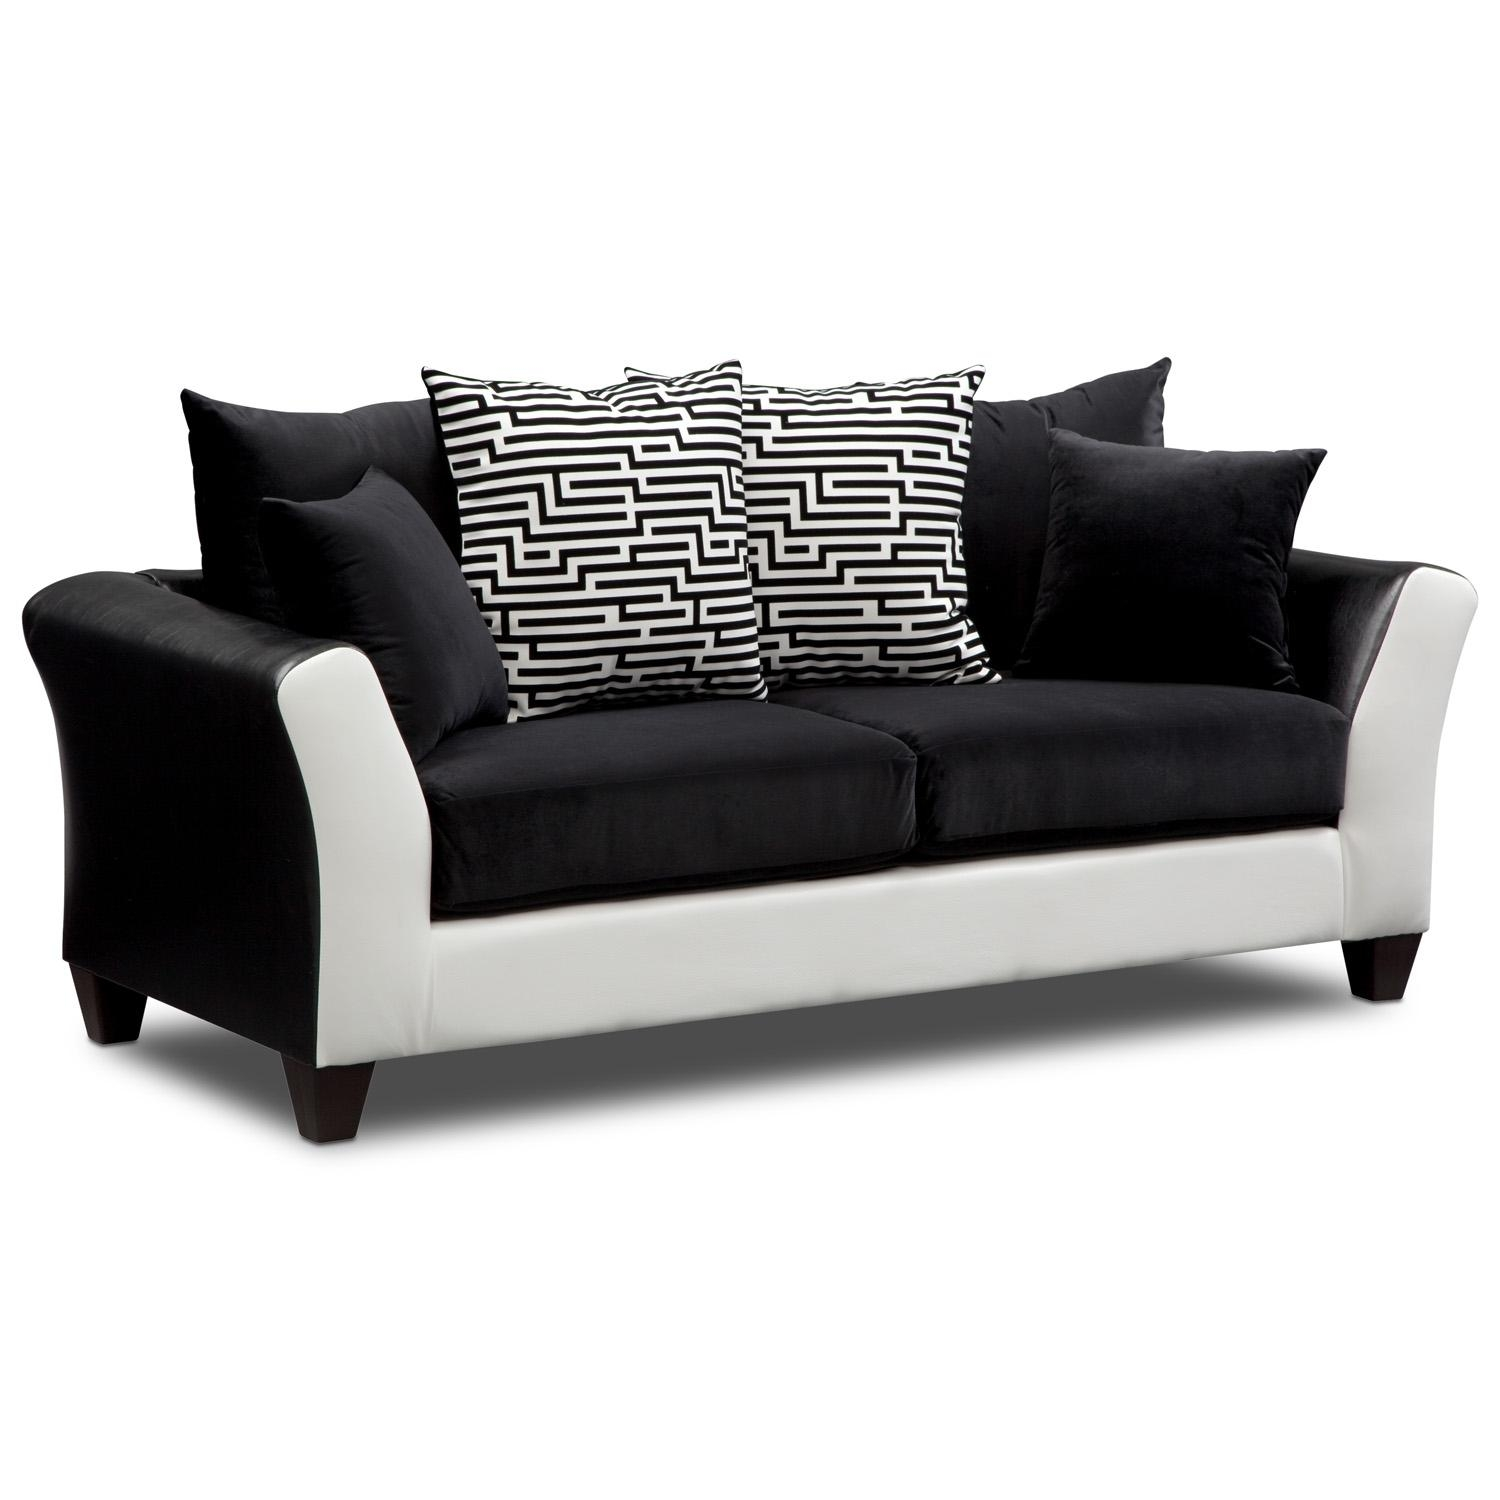 Furniture: Sofas And Sectionals | Sectional Sofa With Recliner For Value City Sofas (View 20 of 20)